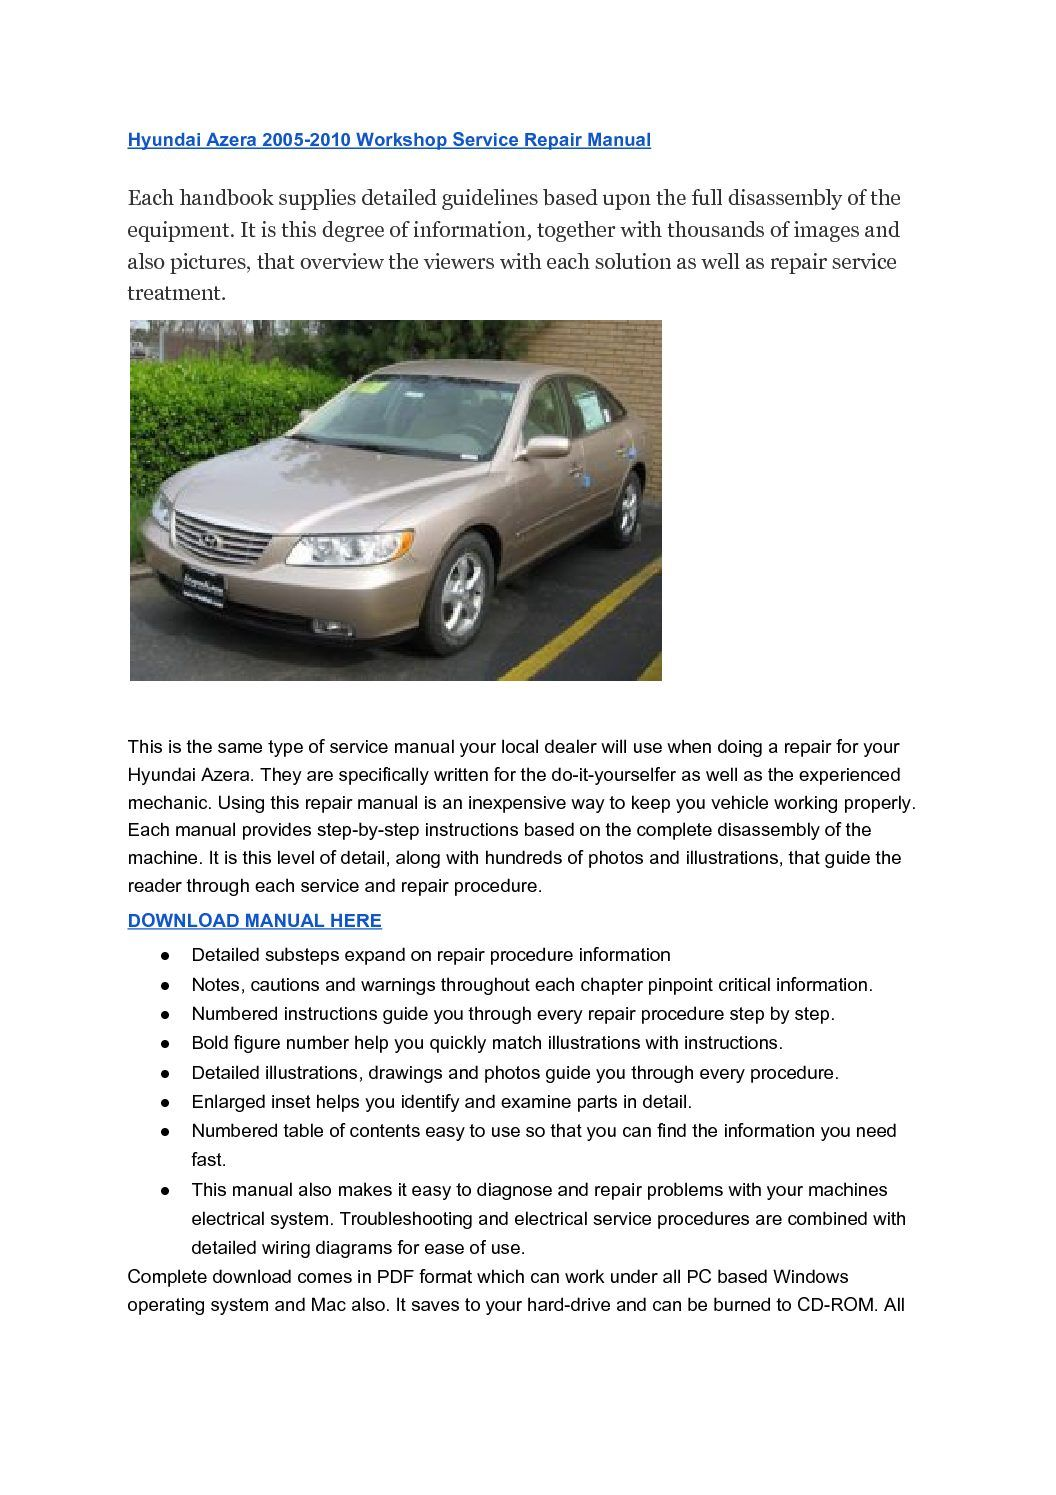 nice hyundai azera 2005 2010 workshop service repair manual http rh pinterest com 2009 hyundai sonata owners manual 2009 hyundai sonata owners manual pdf